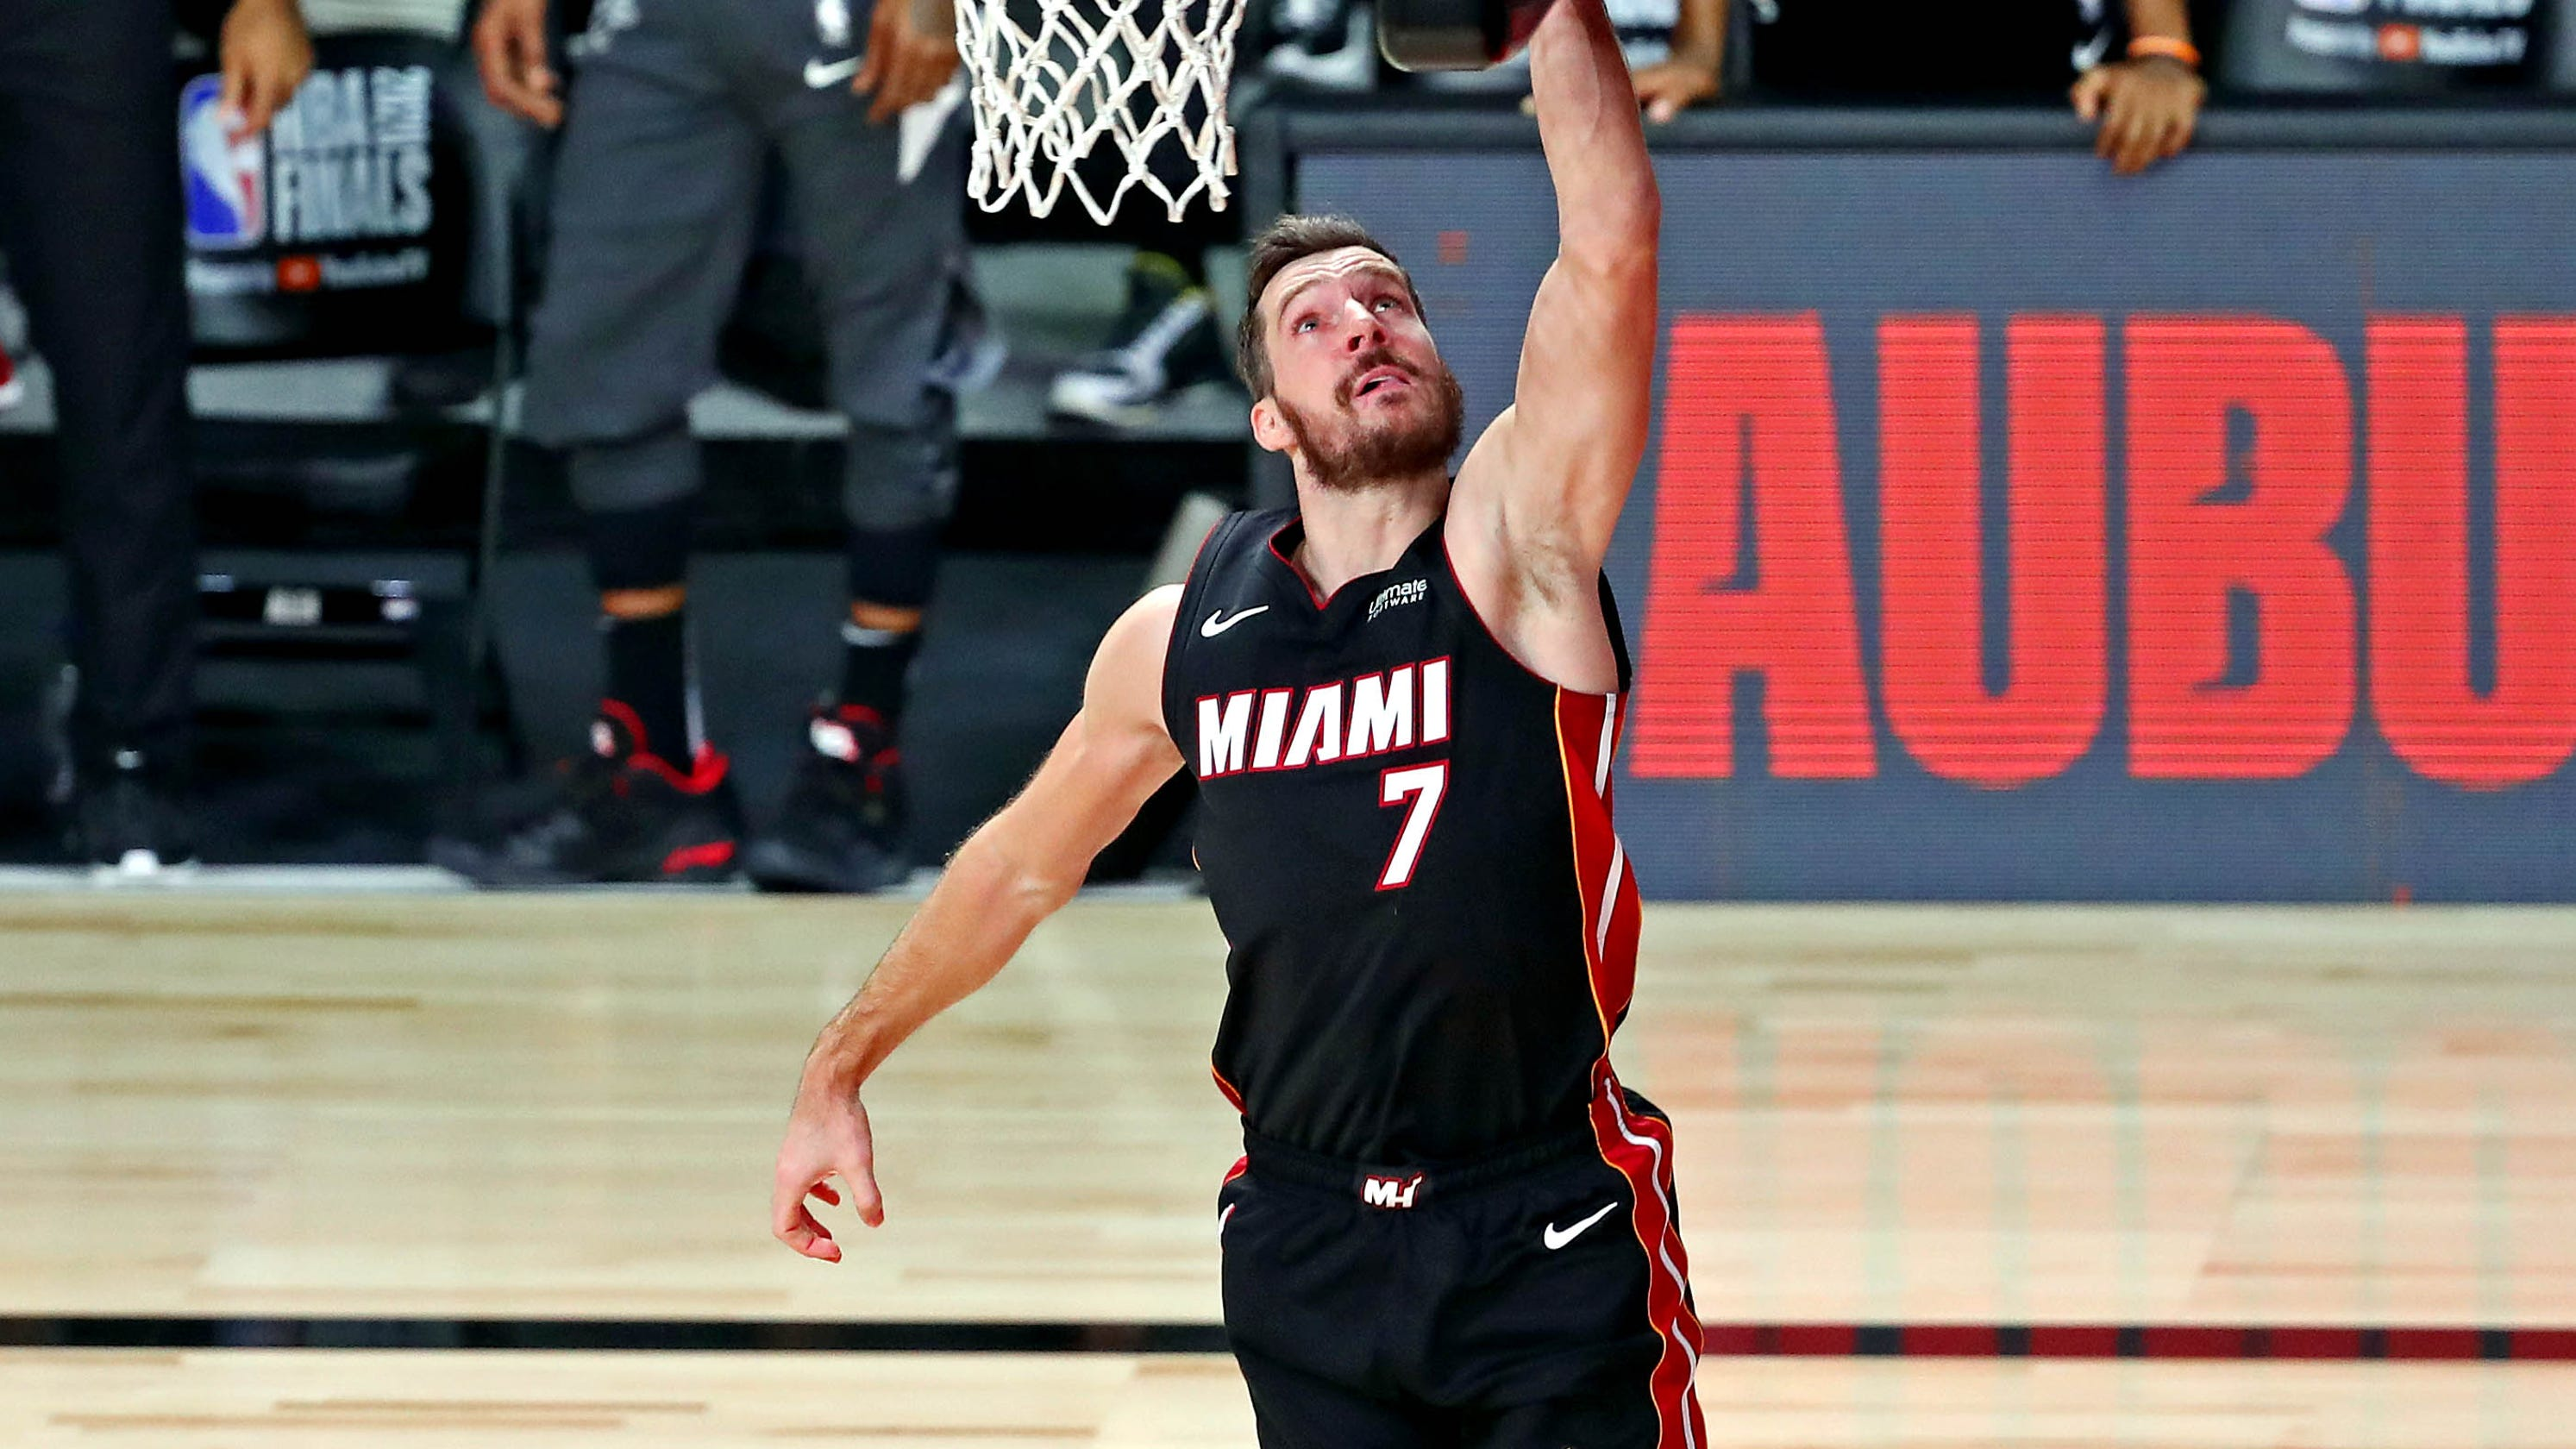 Miami Heat's Goran Dragic, Bam Adebayo injured in Game 1 of NBA Finals